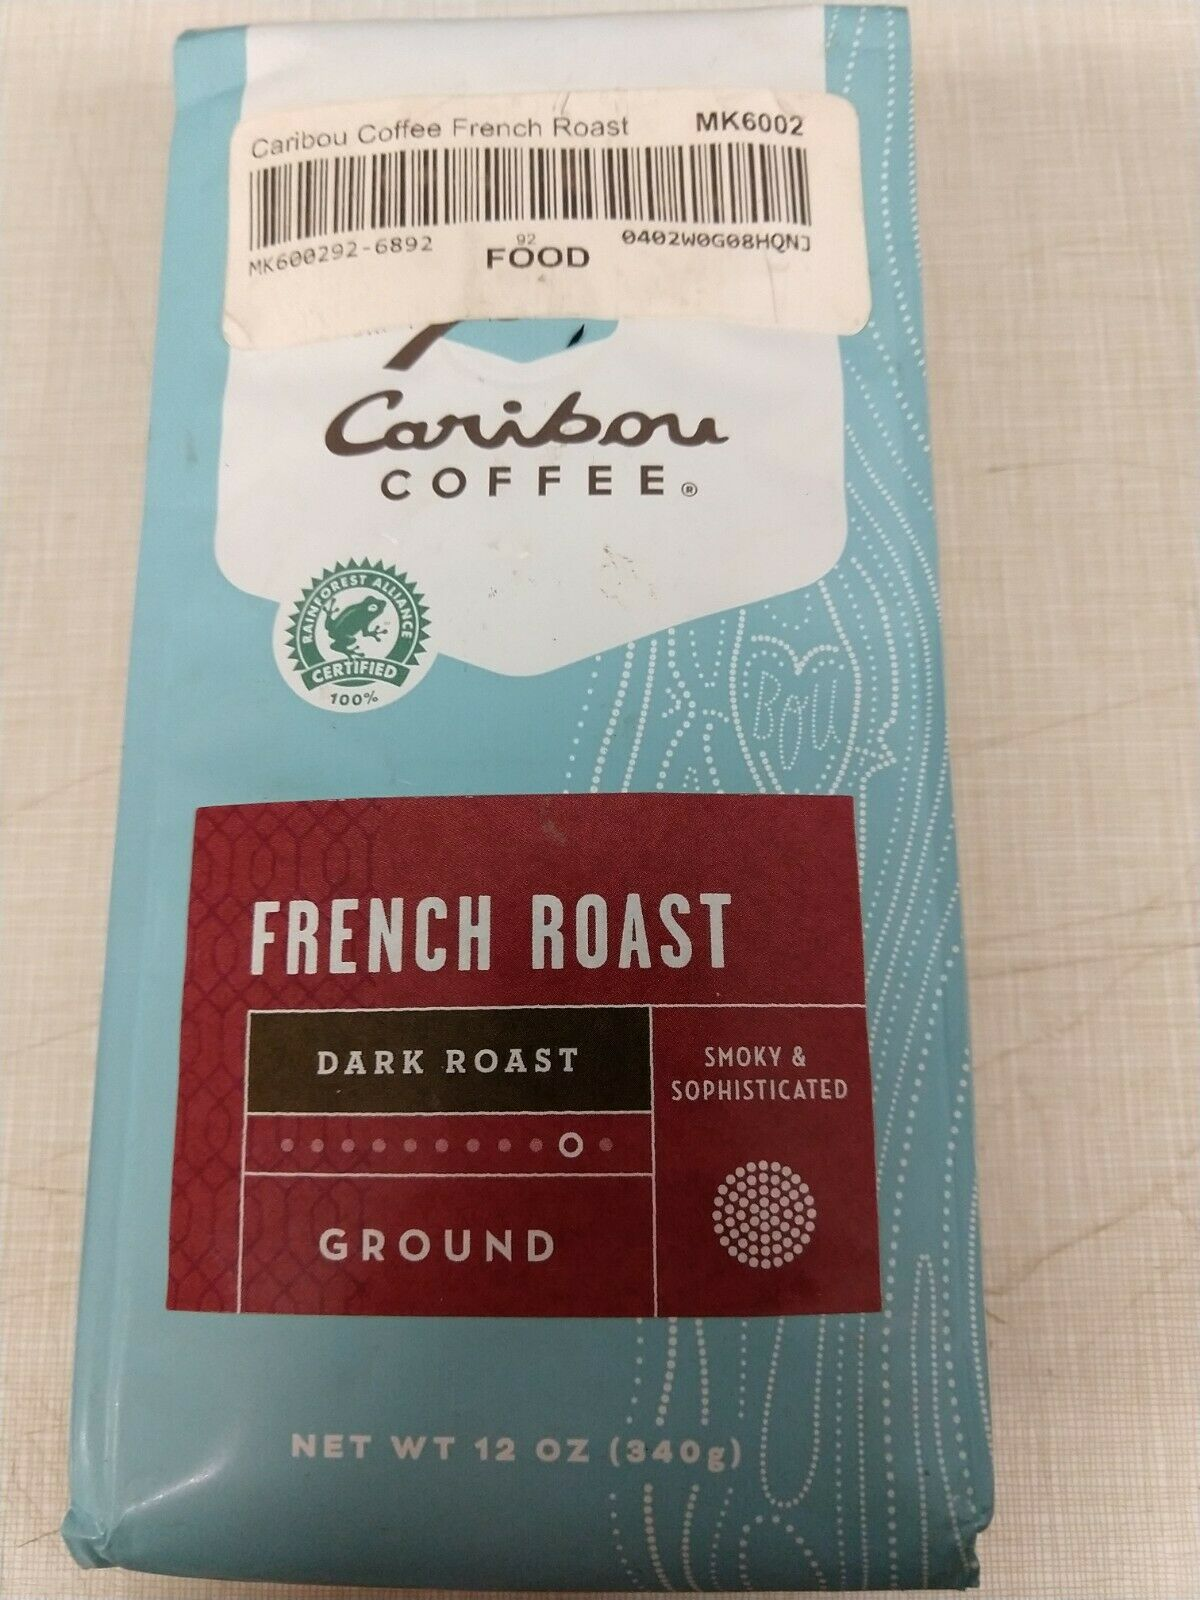 Details About 12oz Bag Caribou Coffee Dark French Roast Ground Expired Smoky Sophisticated Cup In 2020 French Roast Caribou Coffee Caribou